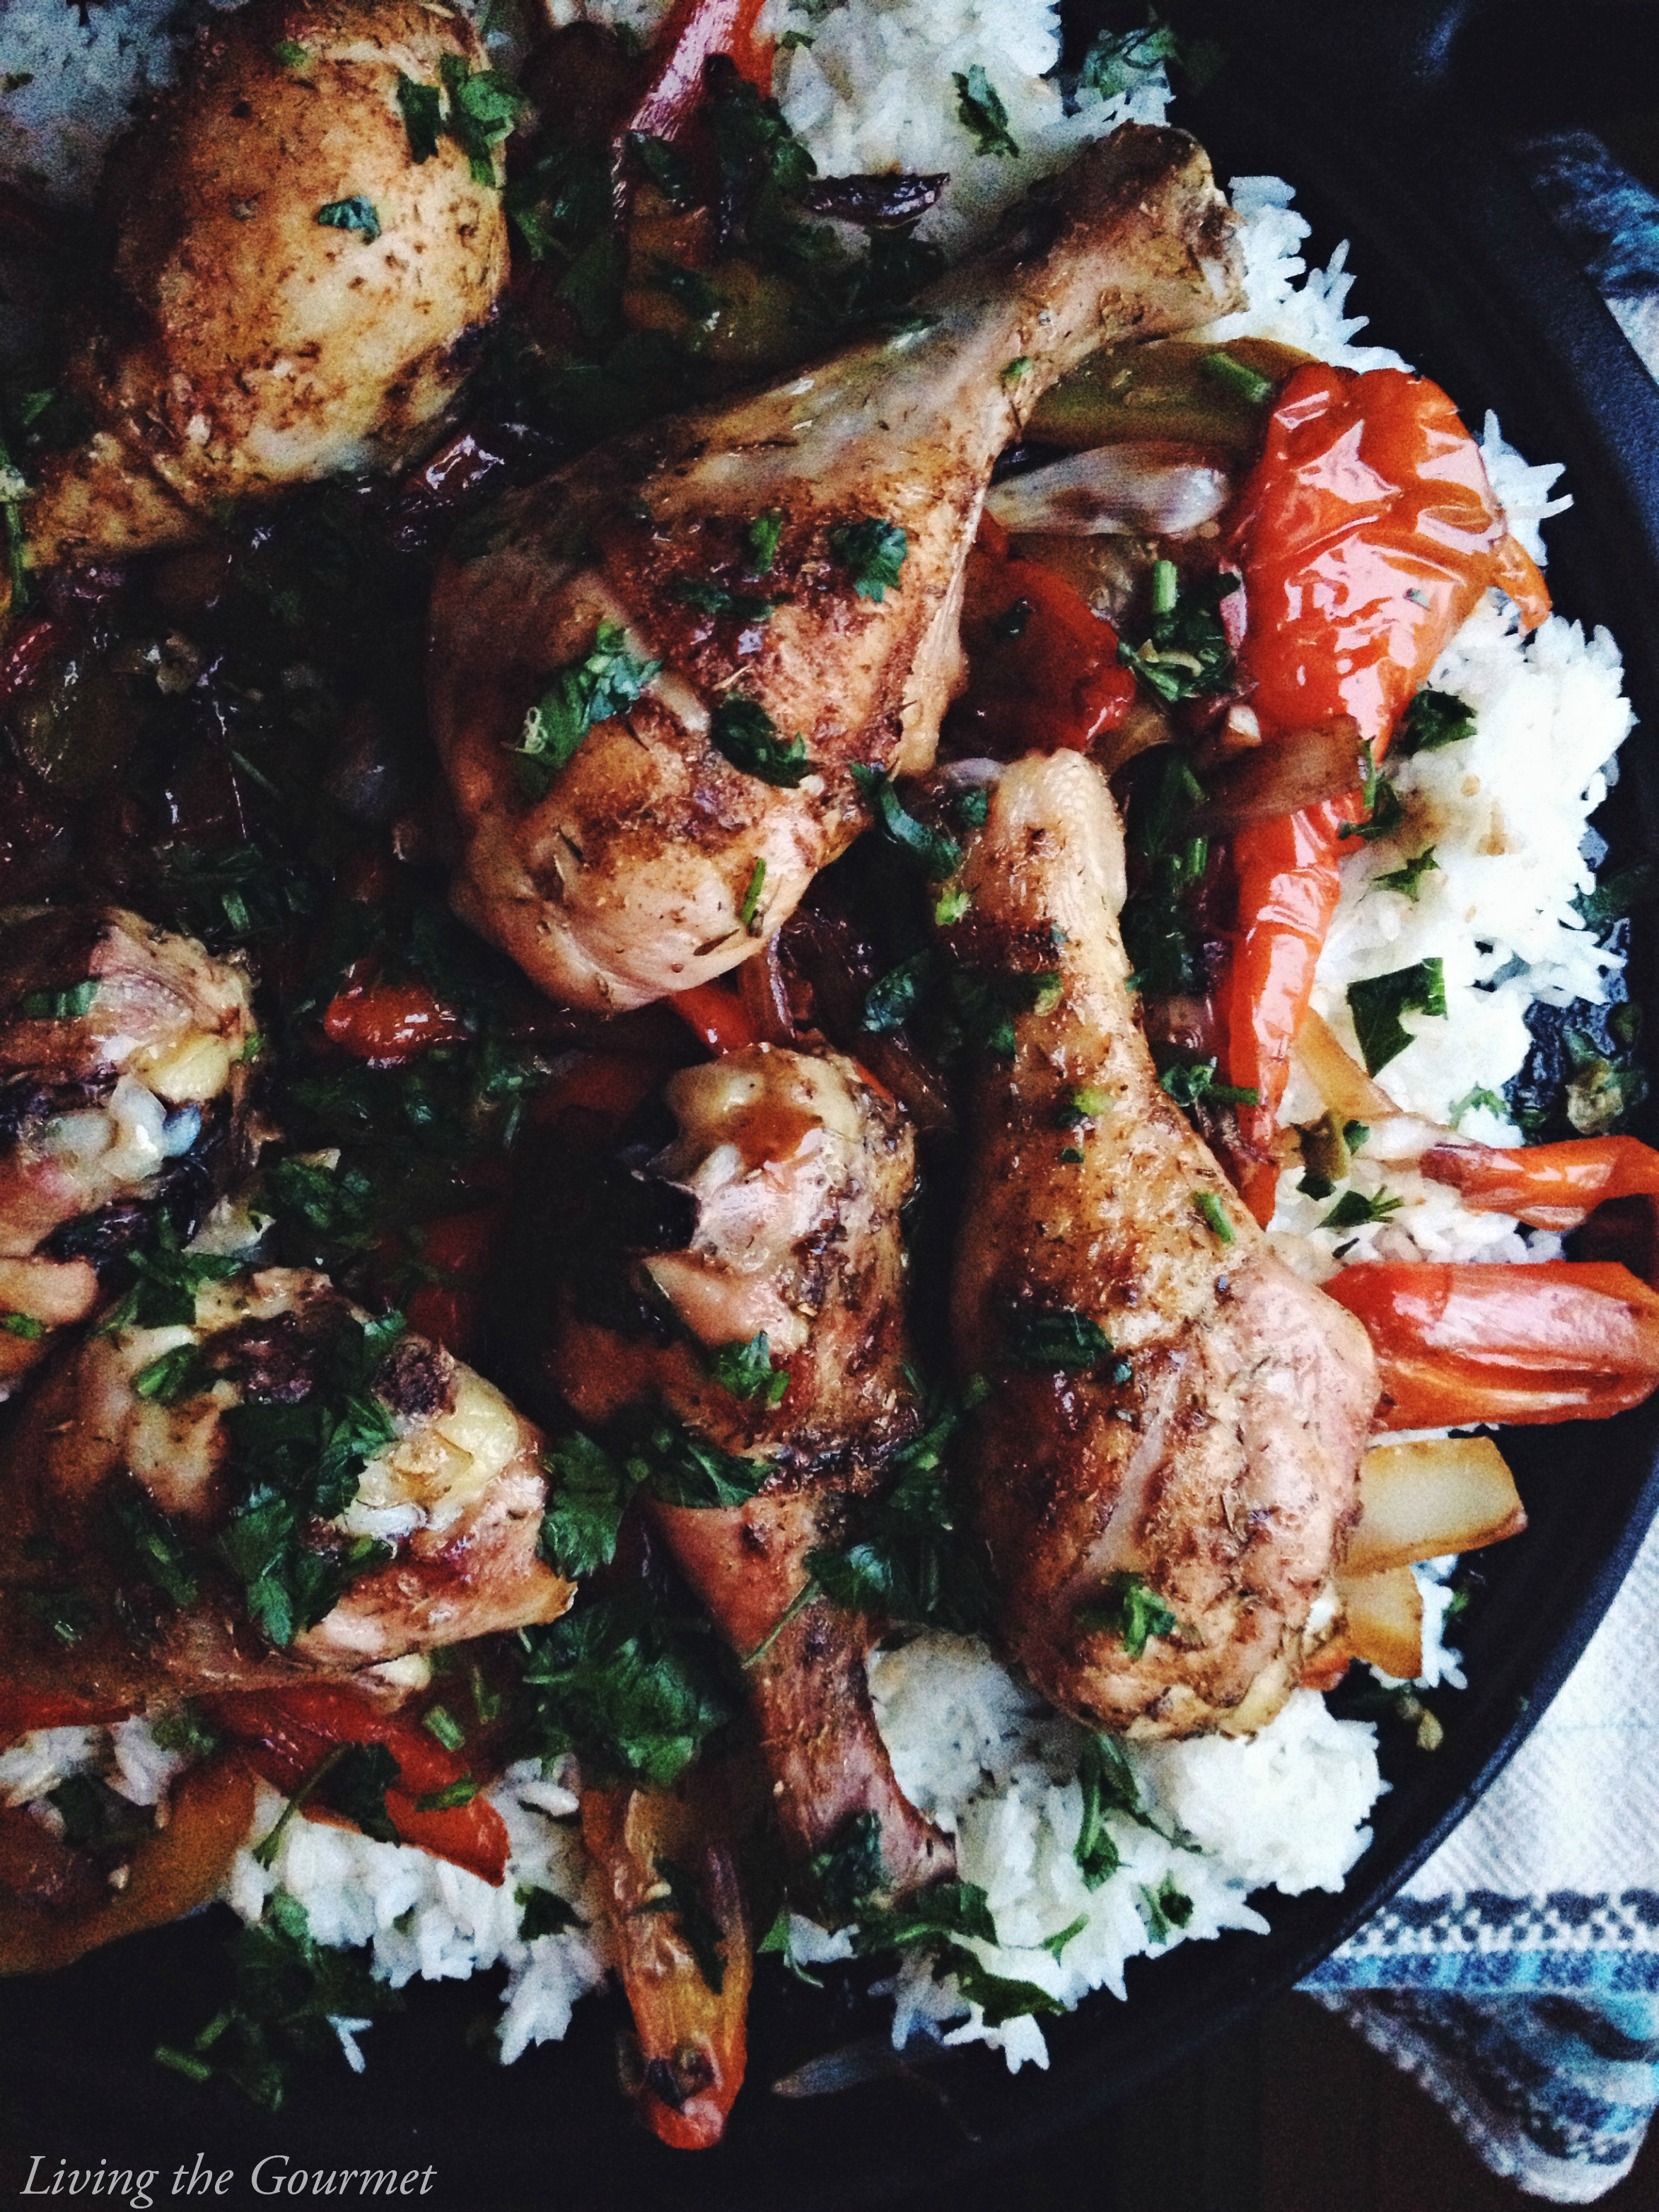 Living the Gourmet: Chicken Legs with Rice and Peppers